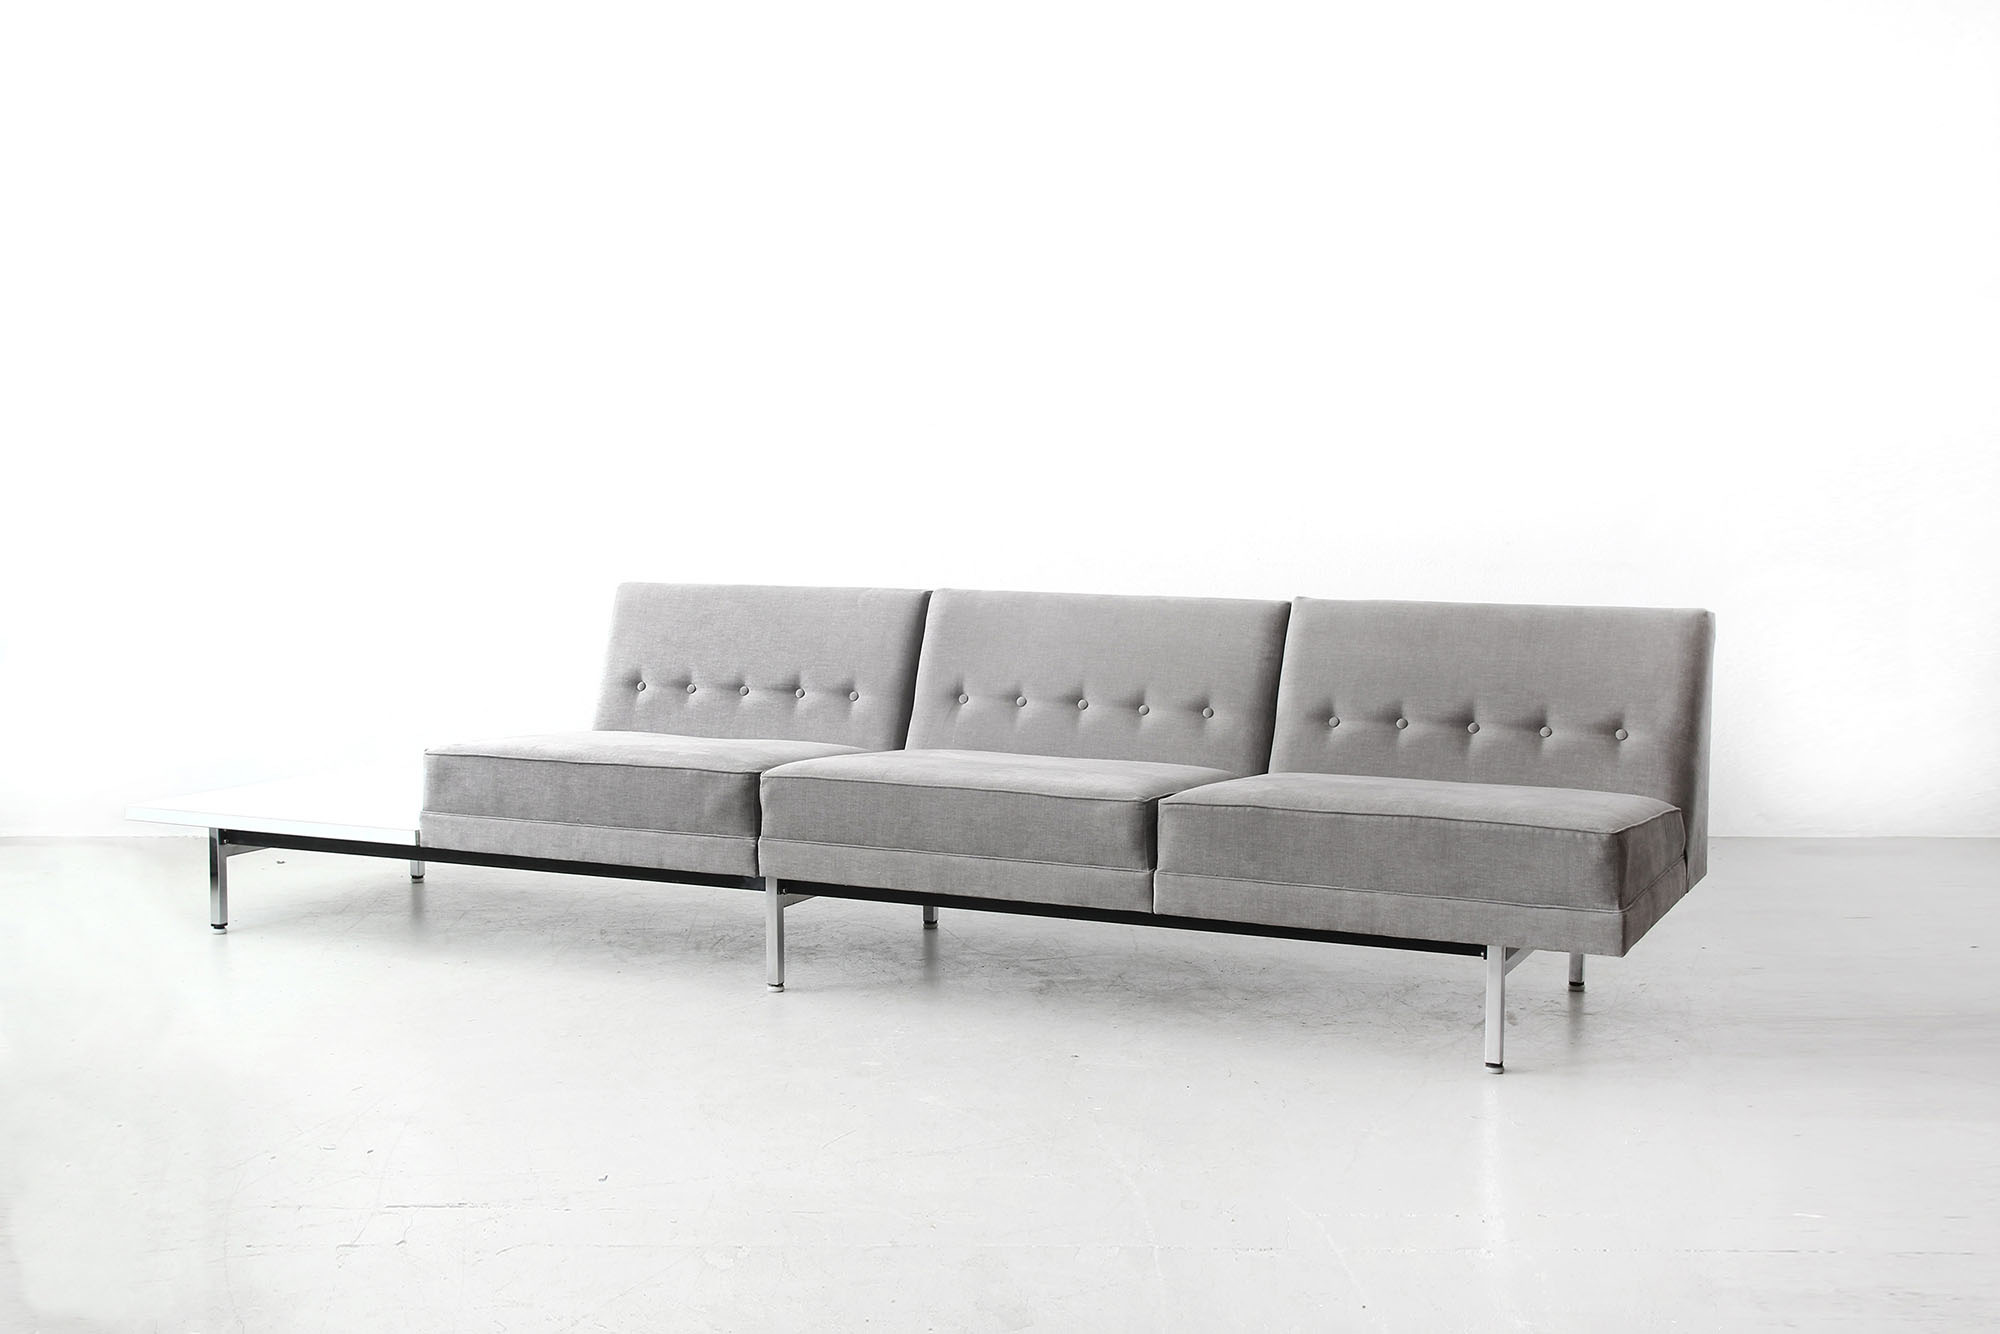 herman miller modular sofa wooden set second hand bangalore george nelson and tables